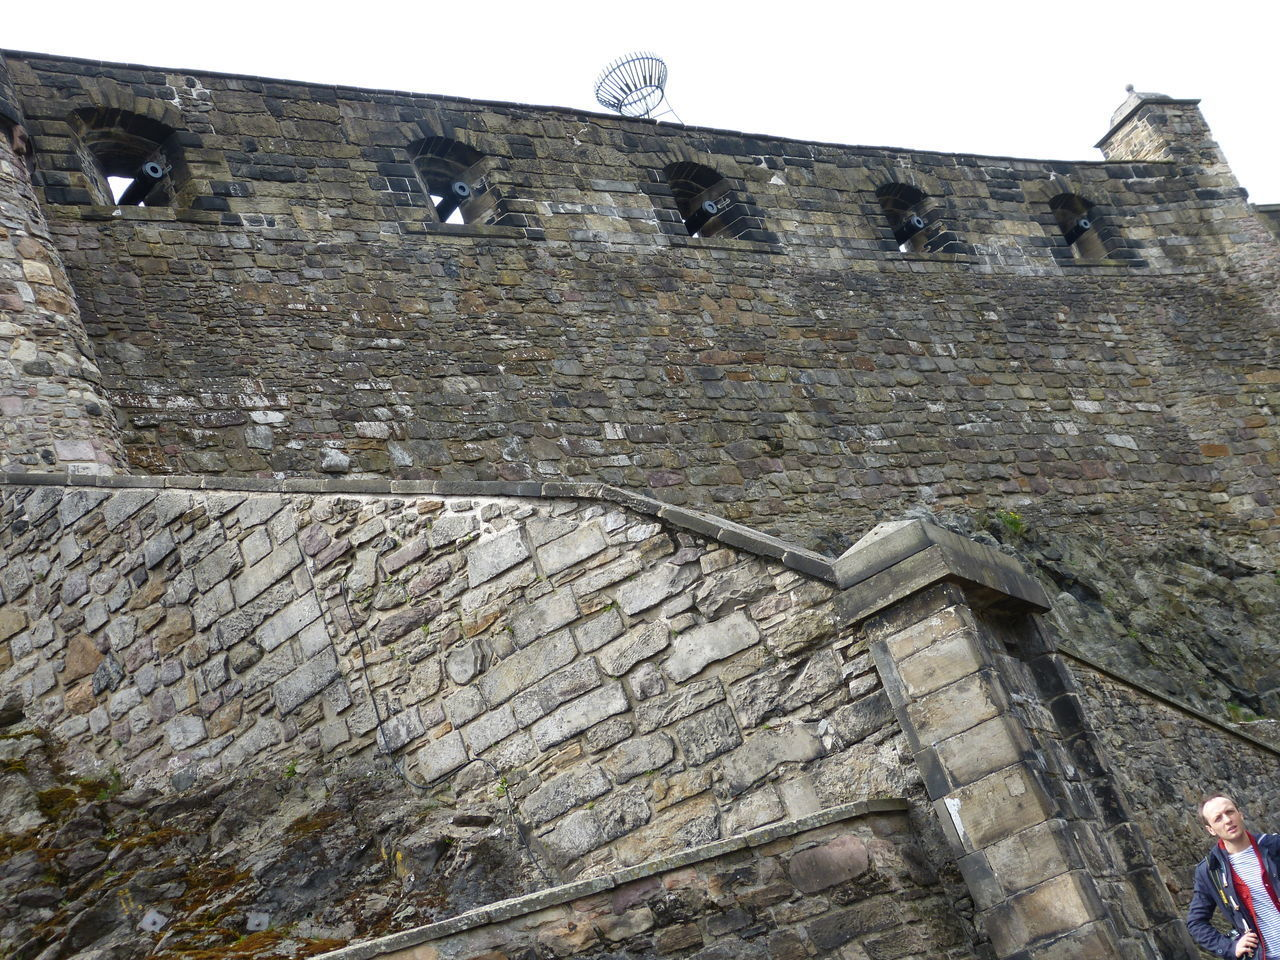 architecture, built structure, building exterior, low angle view, history, the past, wall, wall - building feature, old, stone wall, day, building, sky, tourism, travel destinations, no people, travel, nature, outdoors, castle